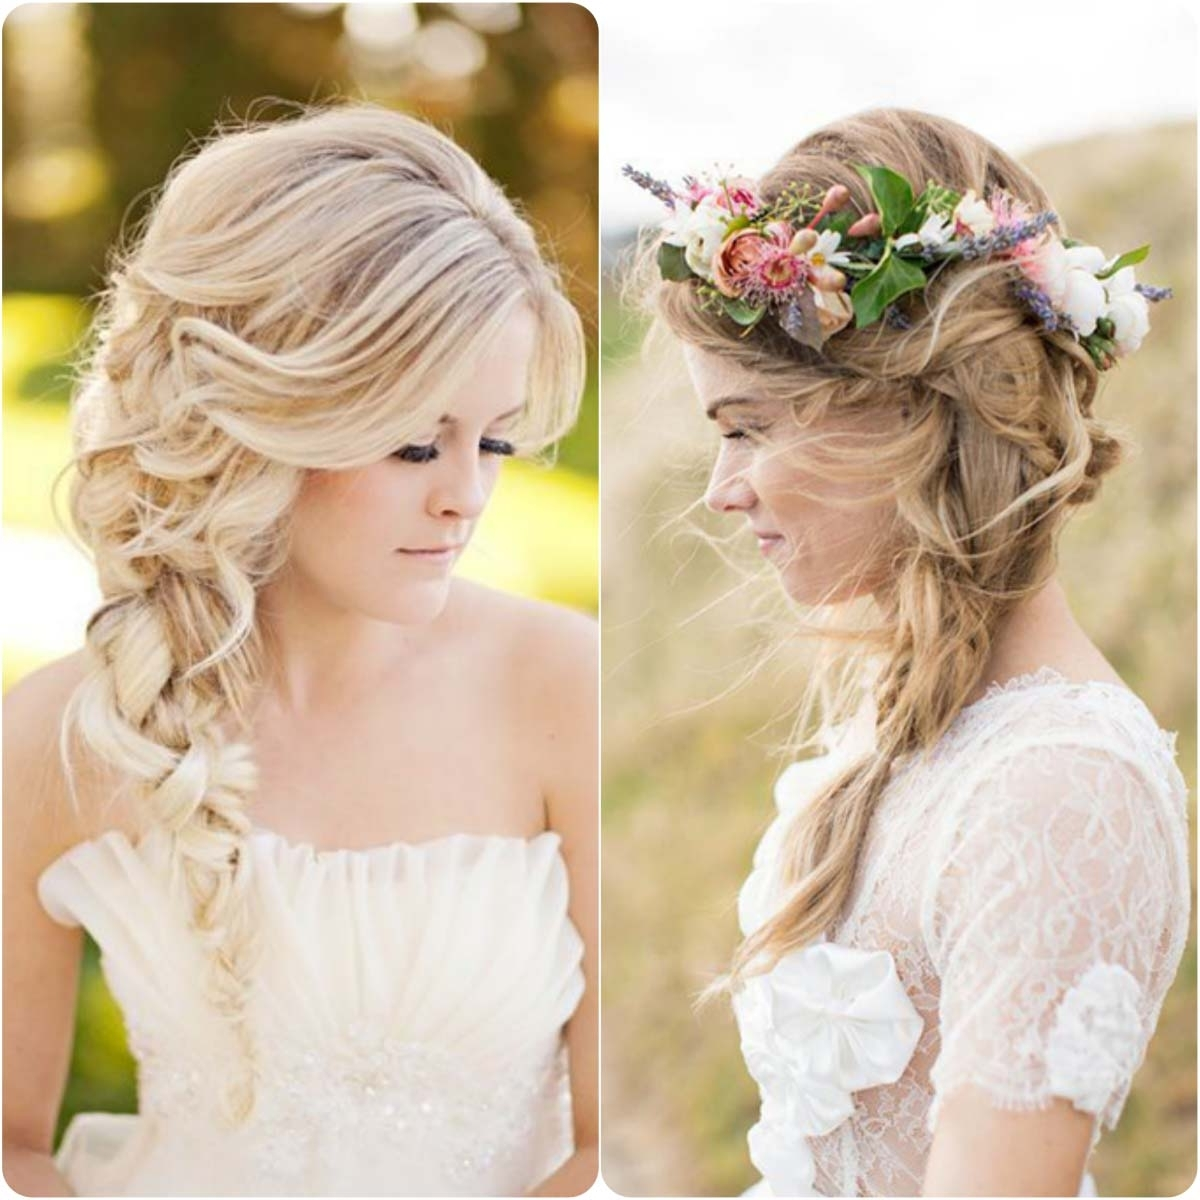 Side Braid Hairstyles Bridal Forg Guest Micro Styles French Updo For Well Known Wedding Braids Hairstyles (View 6 of 15)